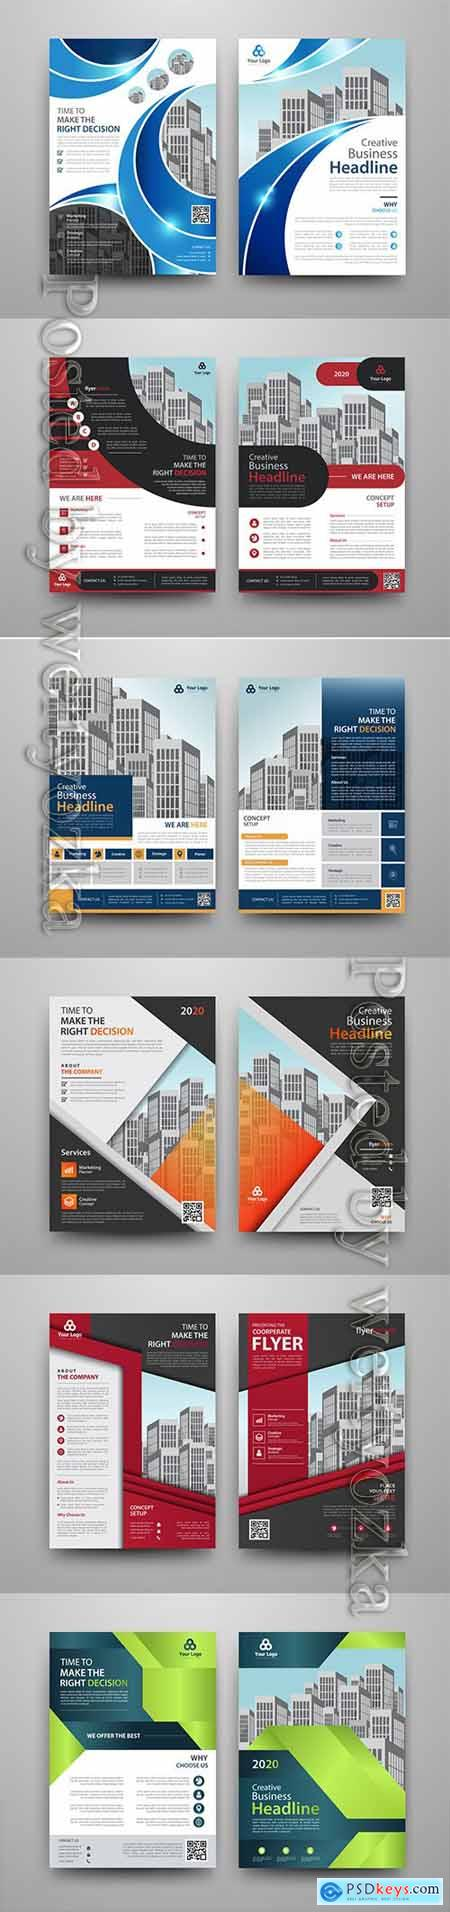 Business vector template for brochure, annual report, magazine # 15